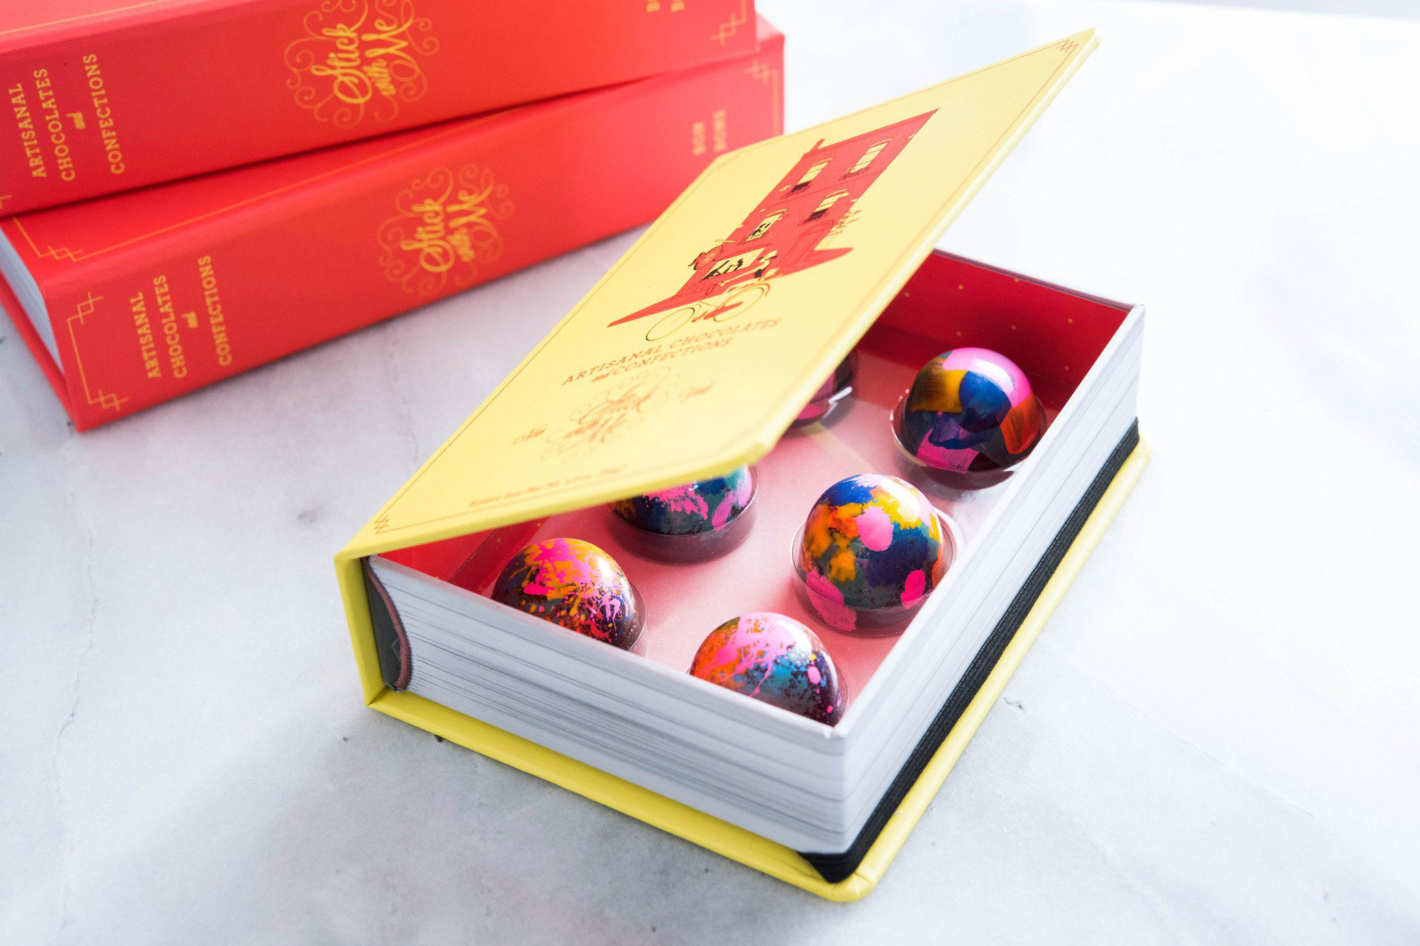 6-Piece Bonbon Box